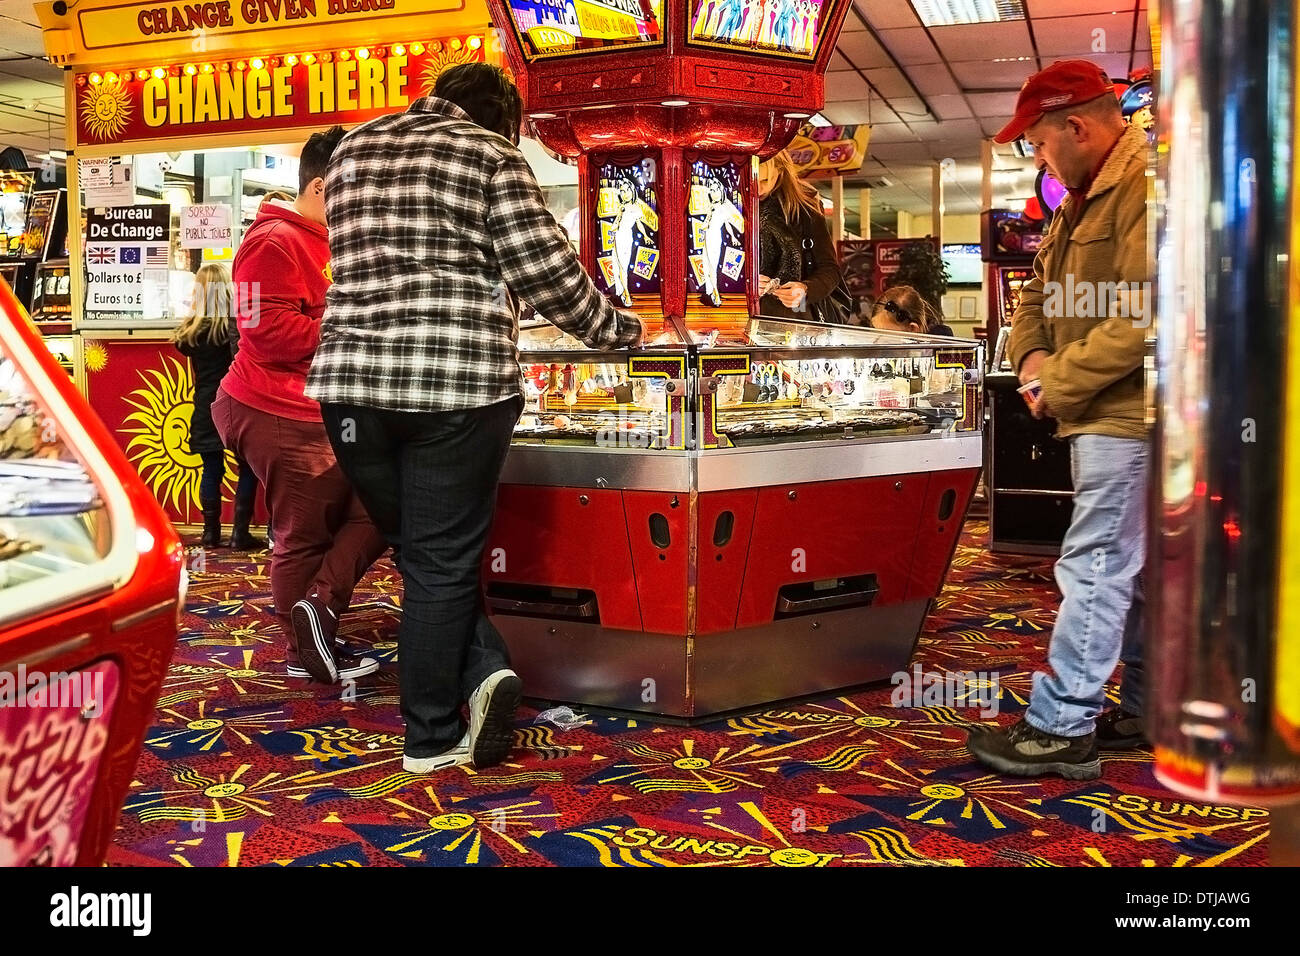 The interior of an amusement arcade in Southend. - Stock Image